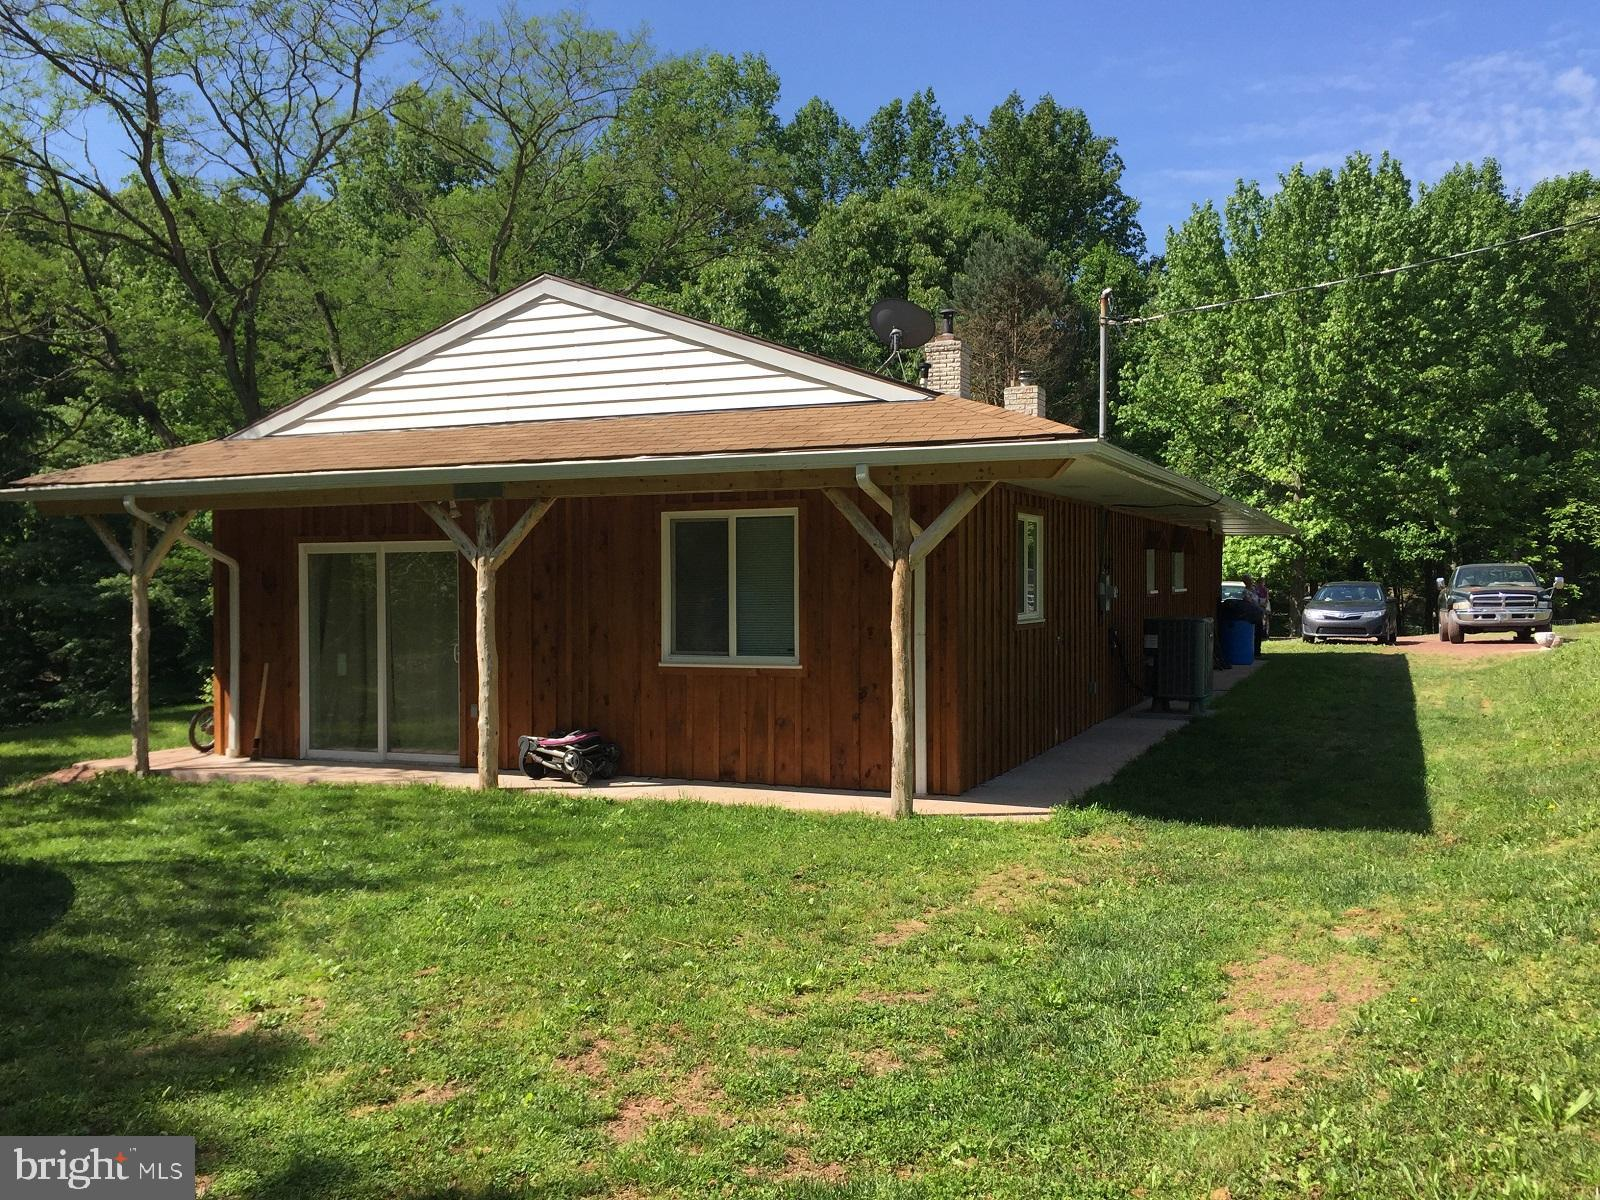 2450 DENEENS GAP ROAD, WARFORDSBURG, PA 17267